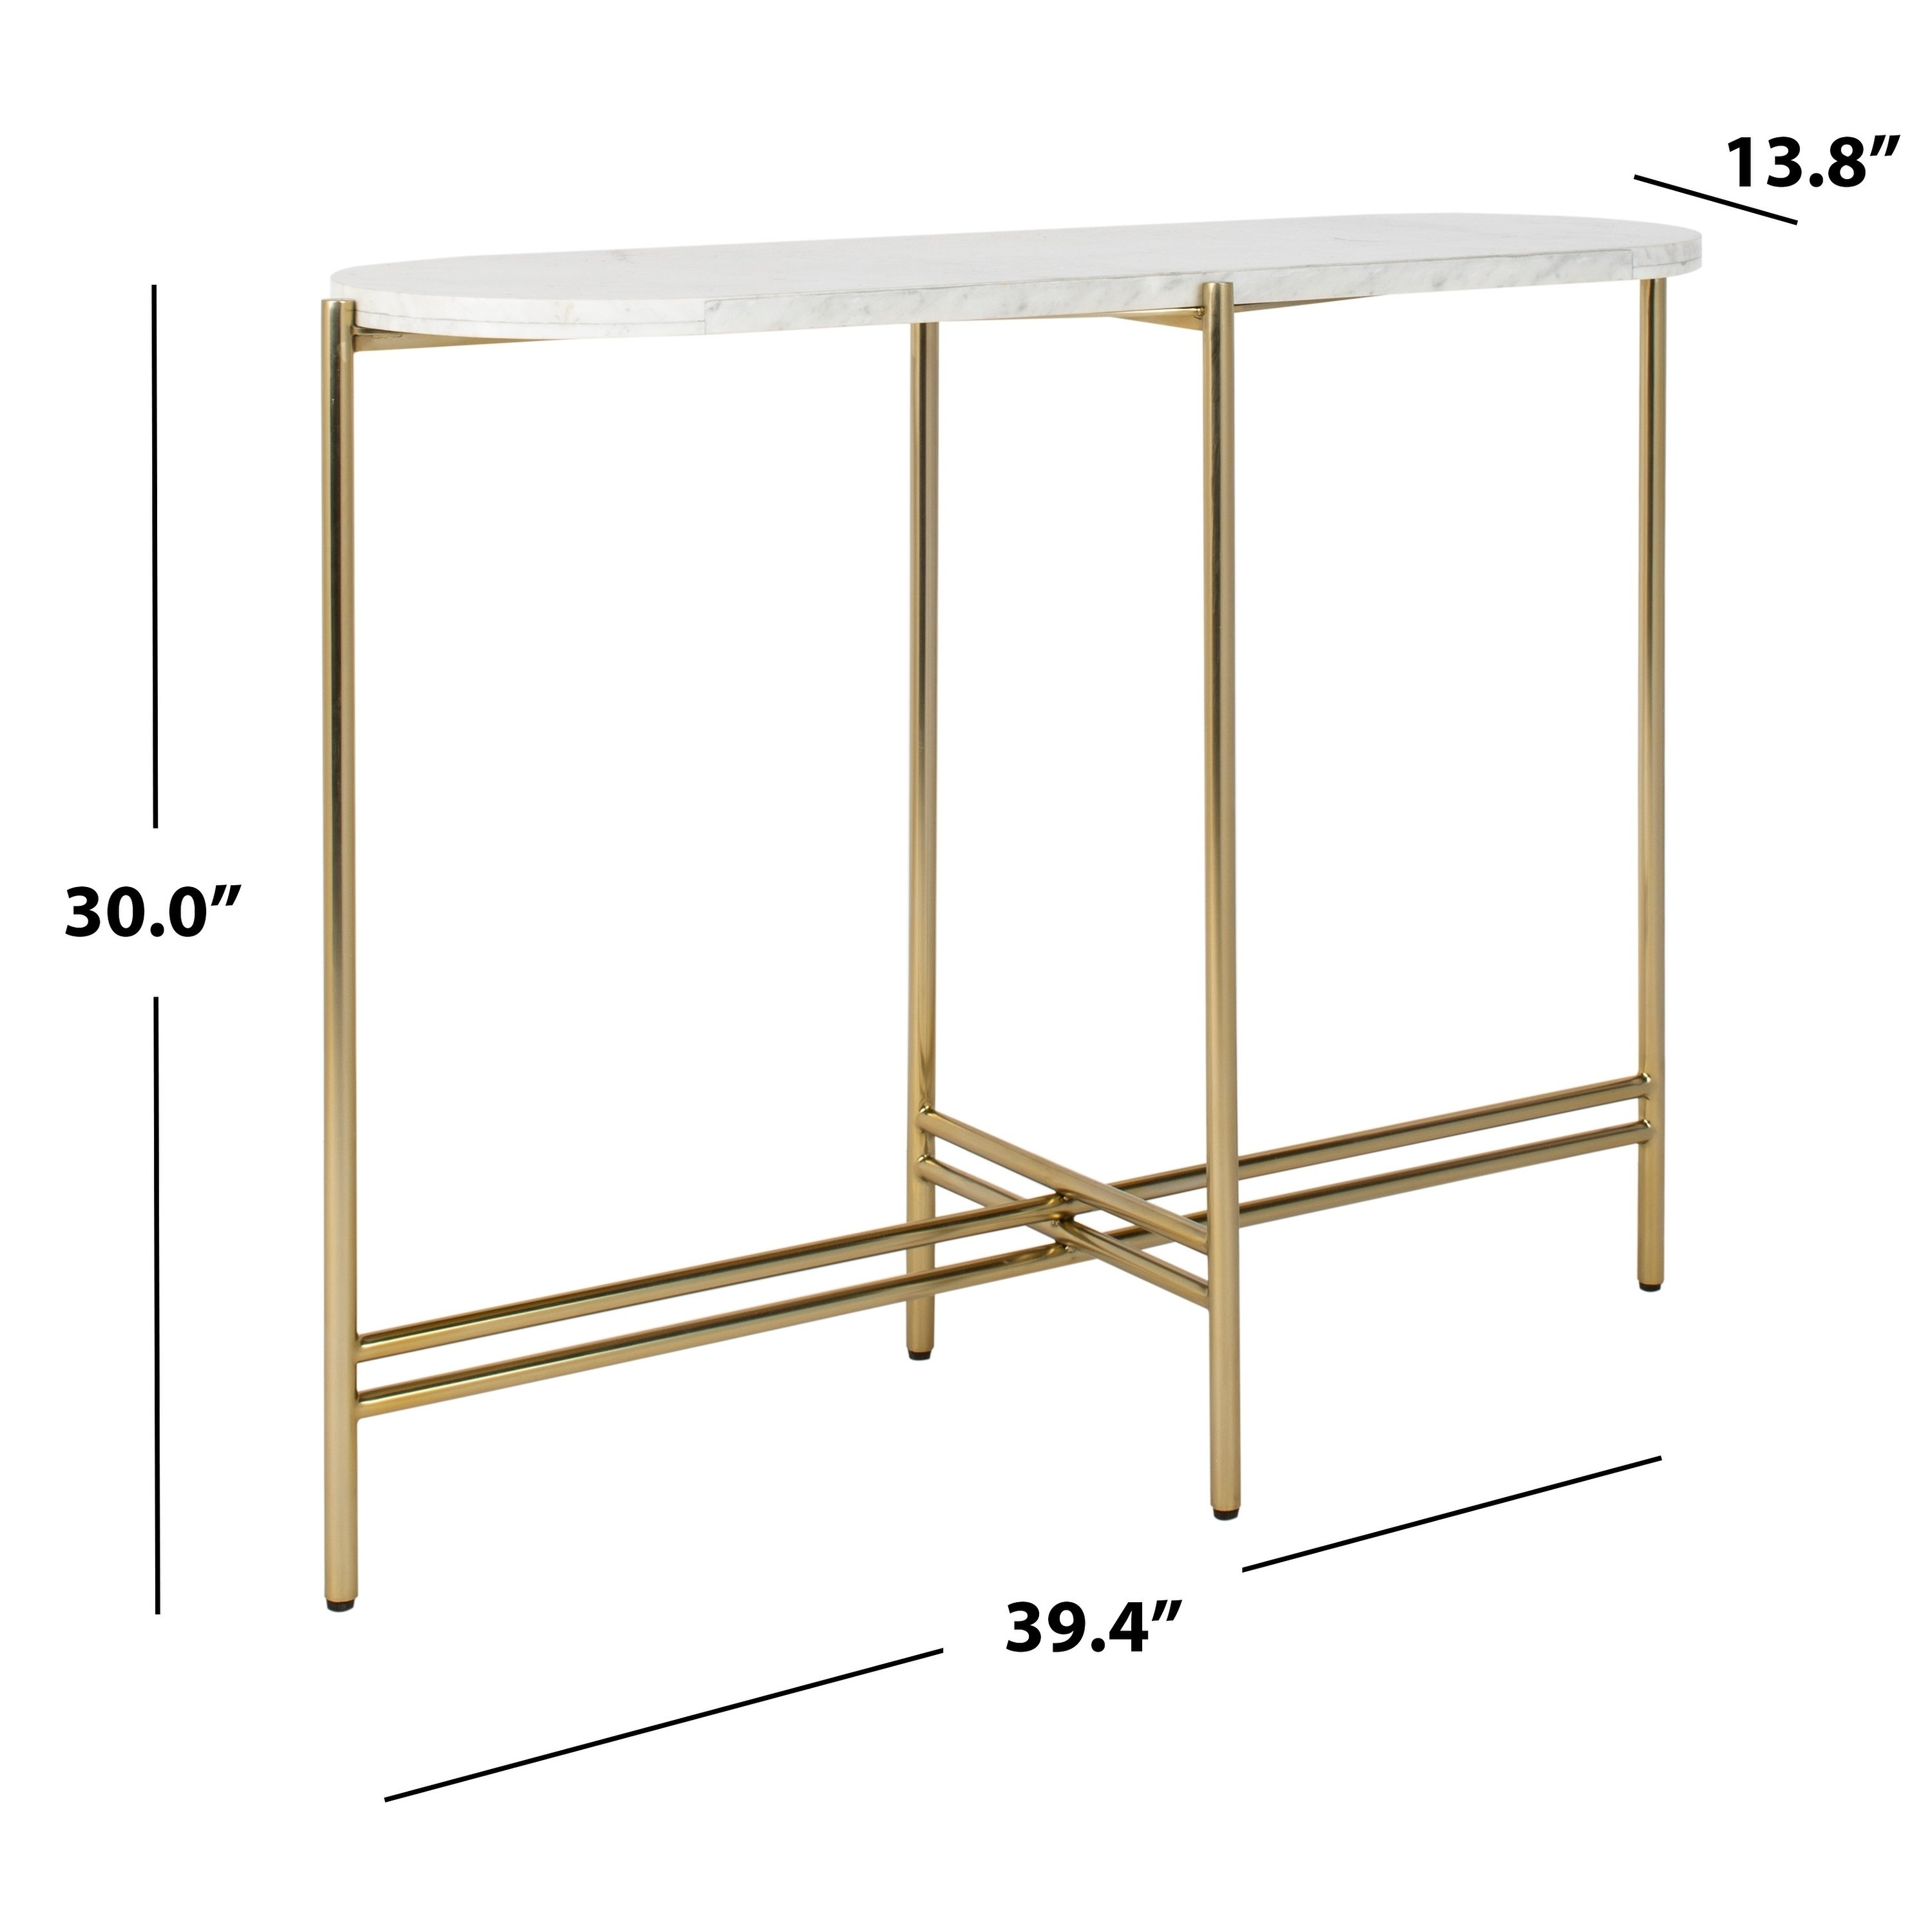 safavieh couture cassie small console table white gold round accent with glass free shipping today hourglass threshold farm bench and chairs grey outdoor furniture entryway